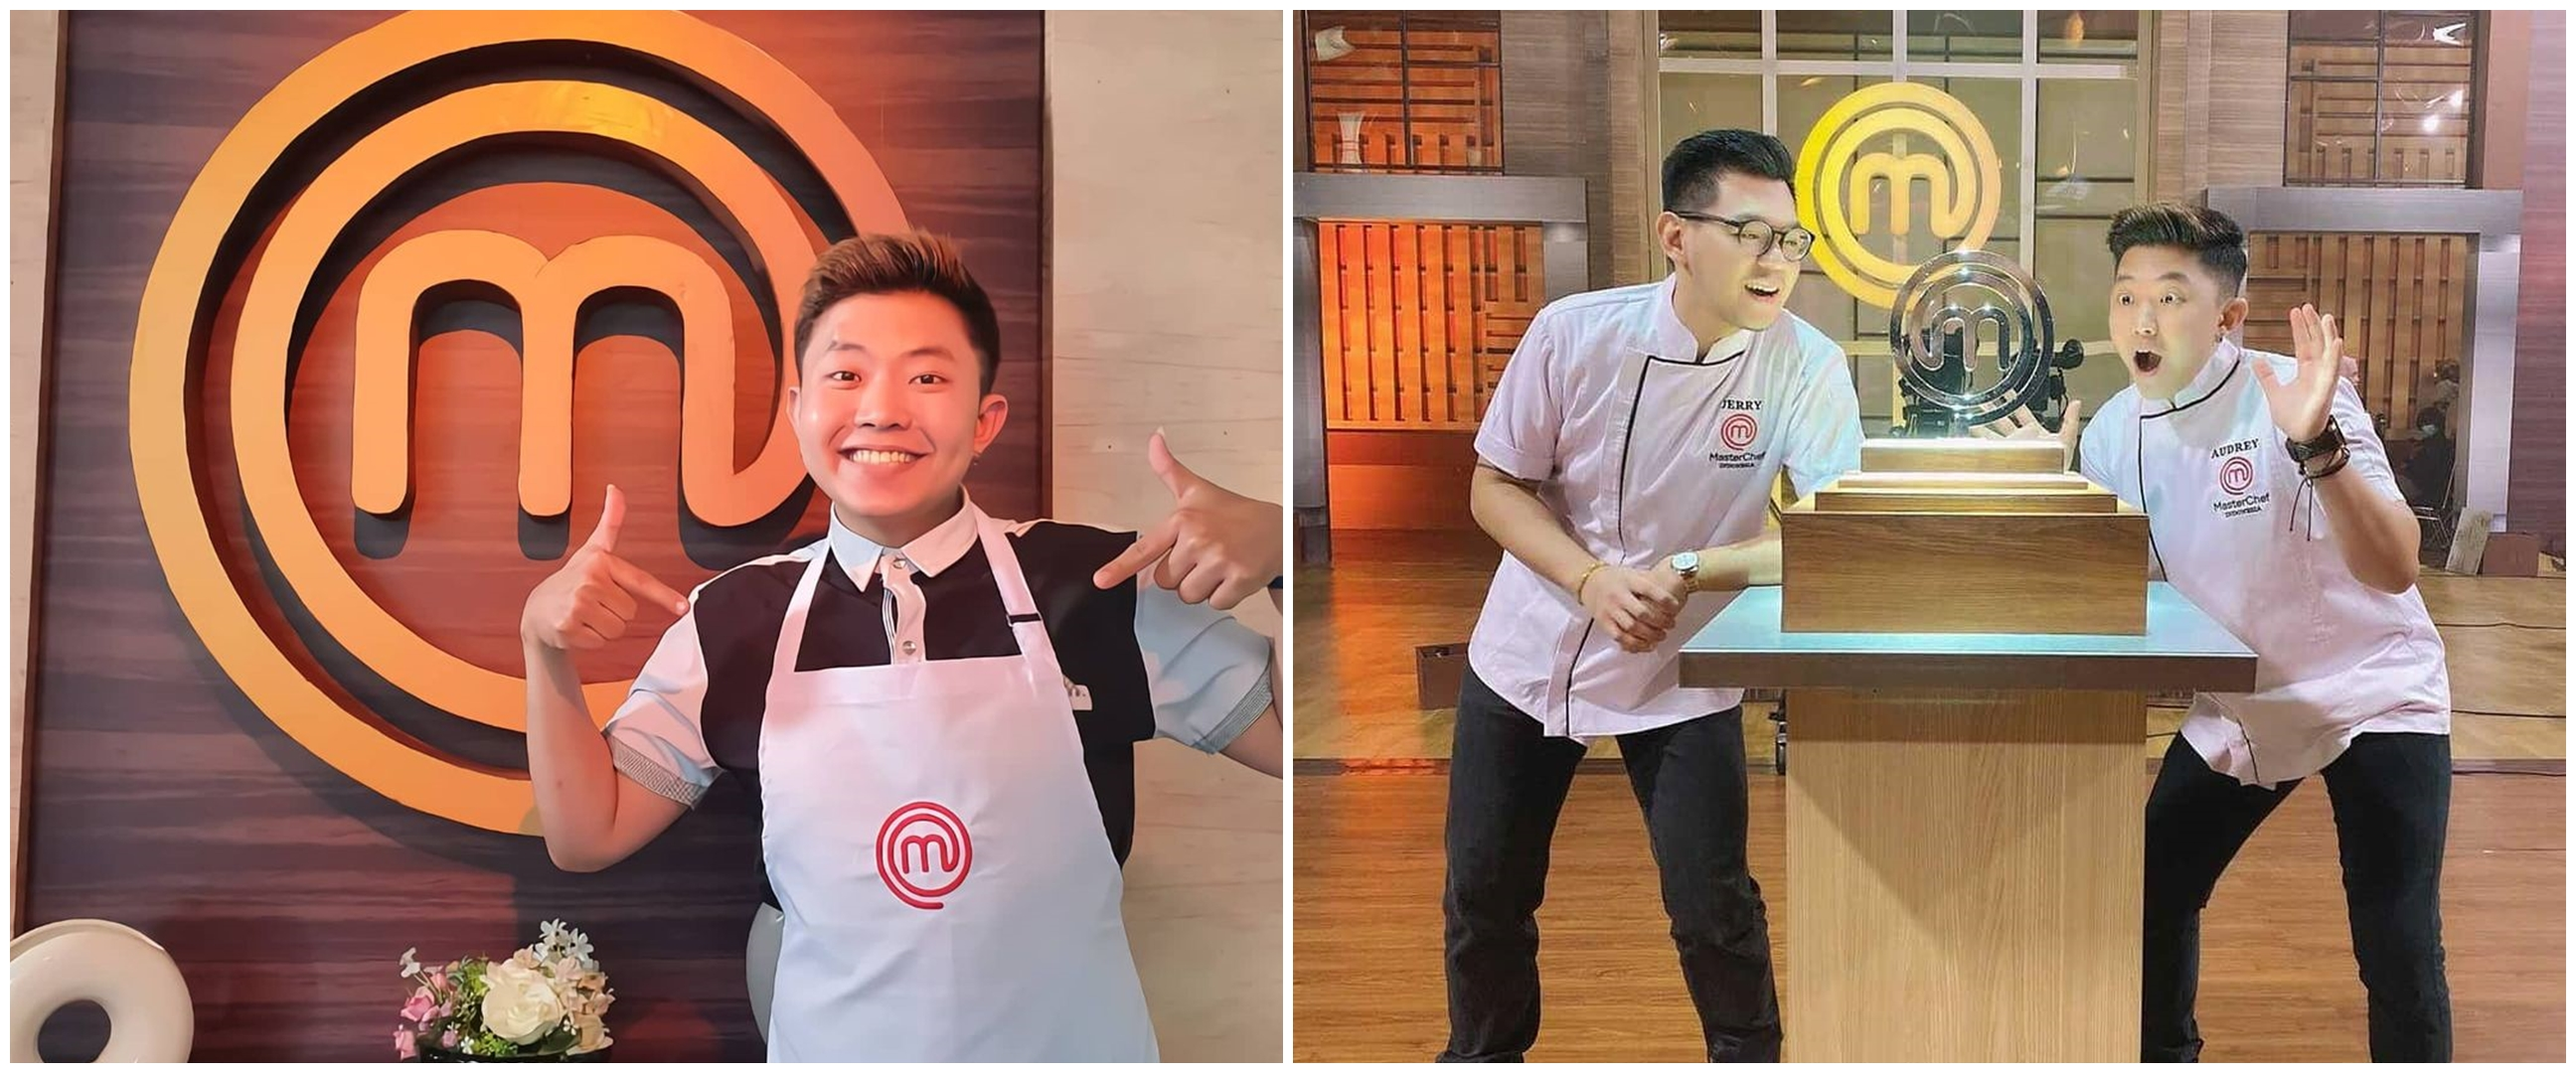 10 Potret Audrey runner up MasterChef season 7, chef yang jago kalimba